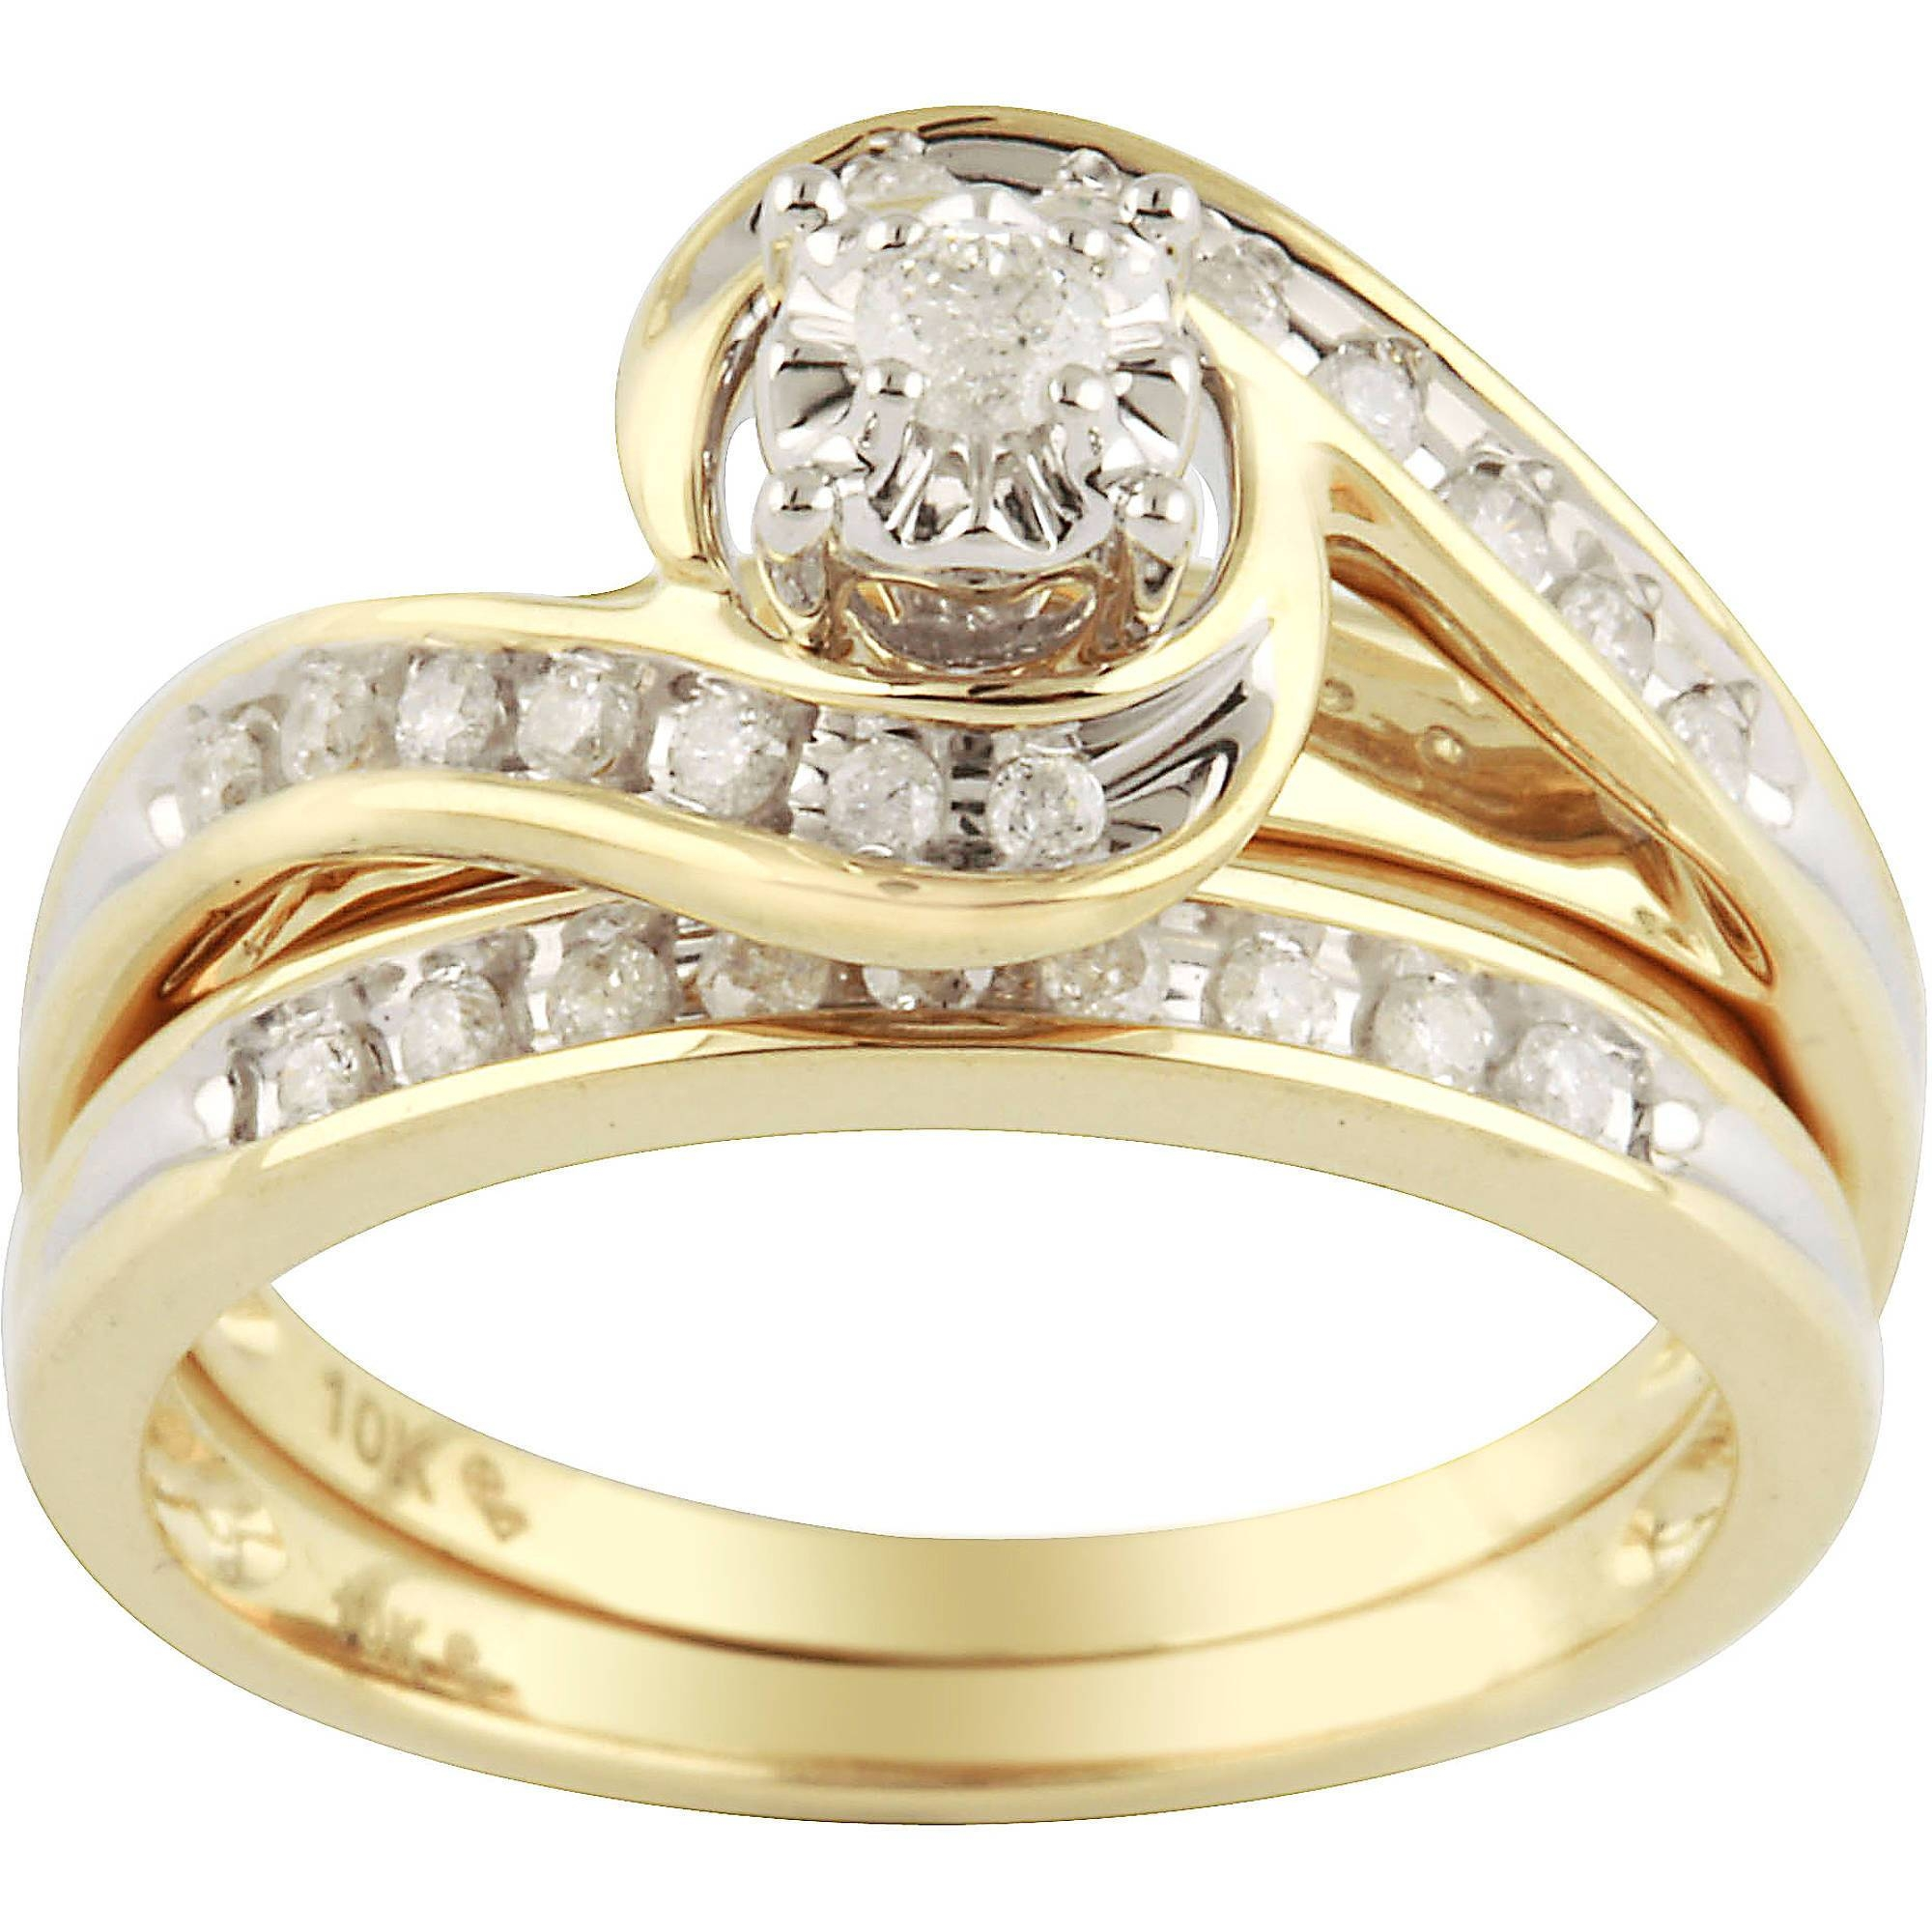 1/3 Carat Diamond Yellow Gold Bypass Bridal Ring Set – Walmart For Gold Engagement And Wedding Rings Sets (View 3 of 15)